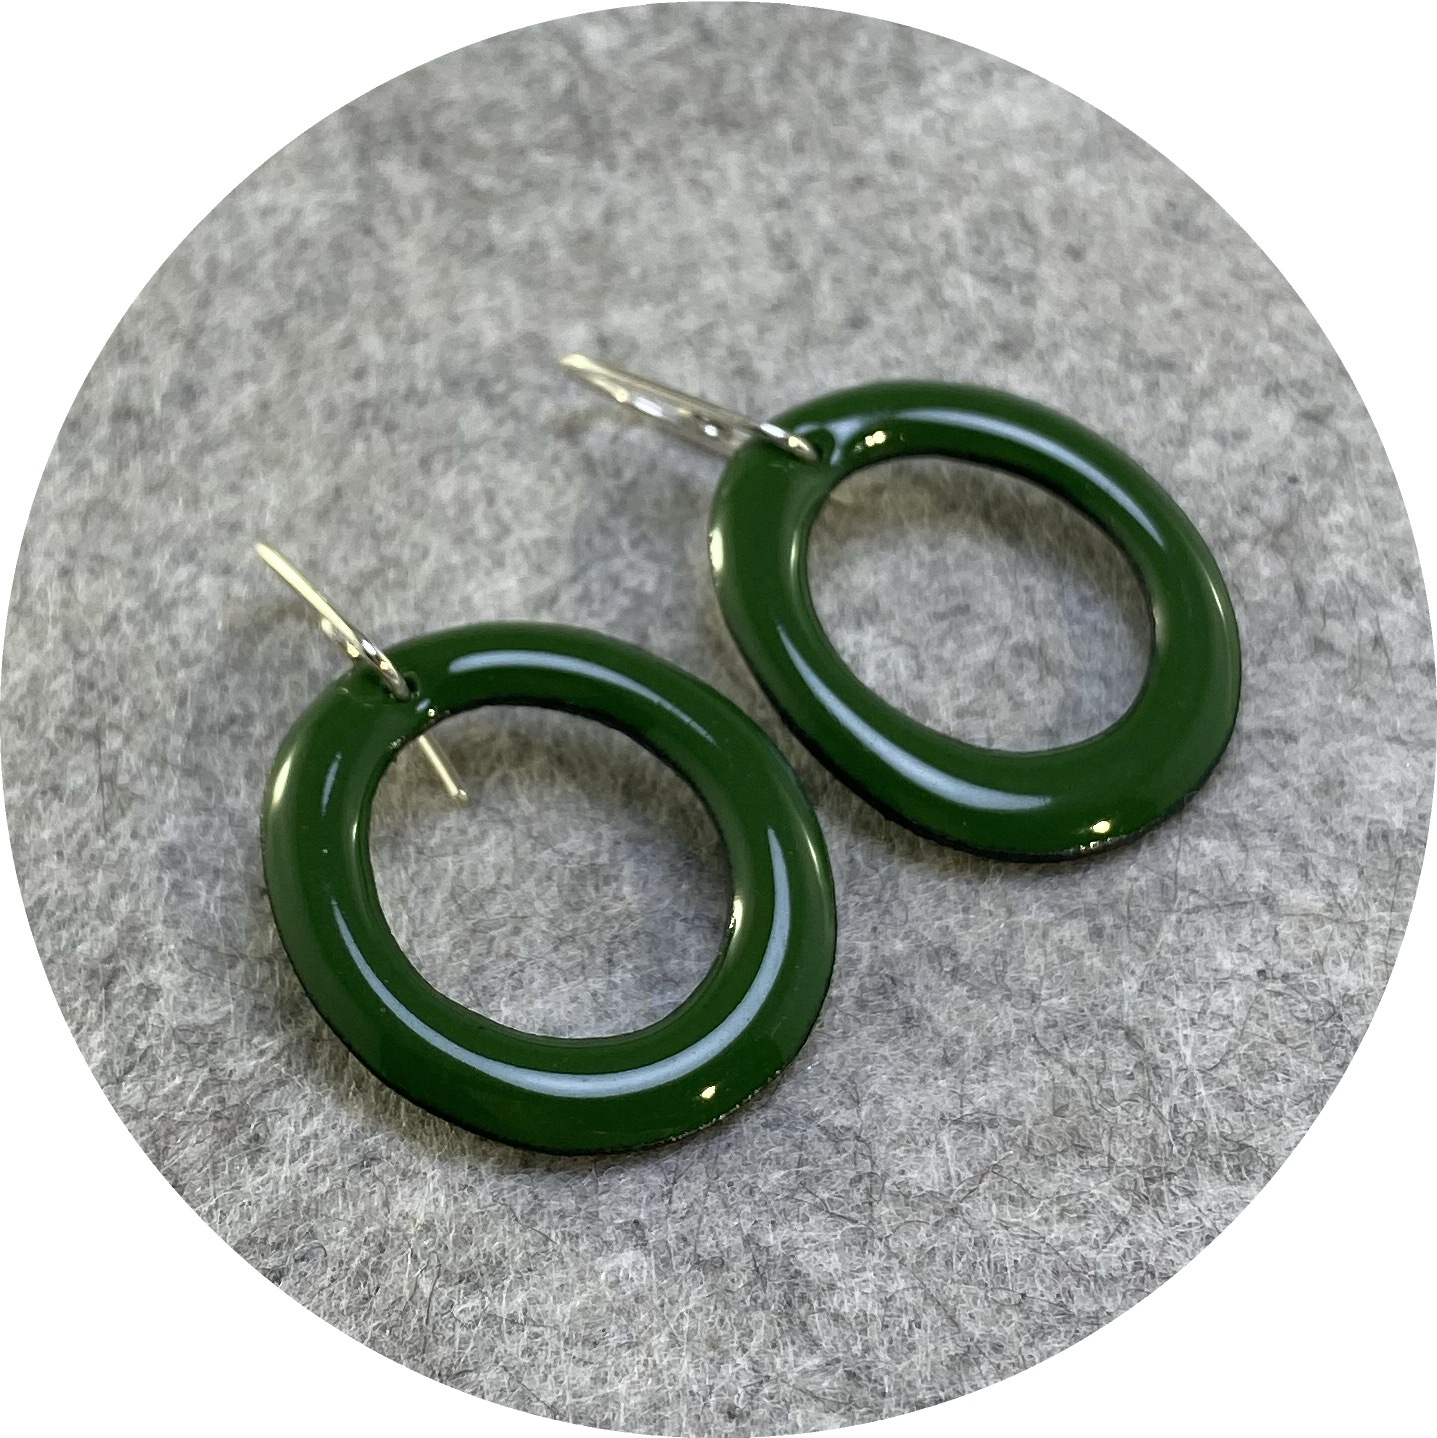 Jenna O'Brien- Small Enamel hoops in Ivy Green with sterling silver.